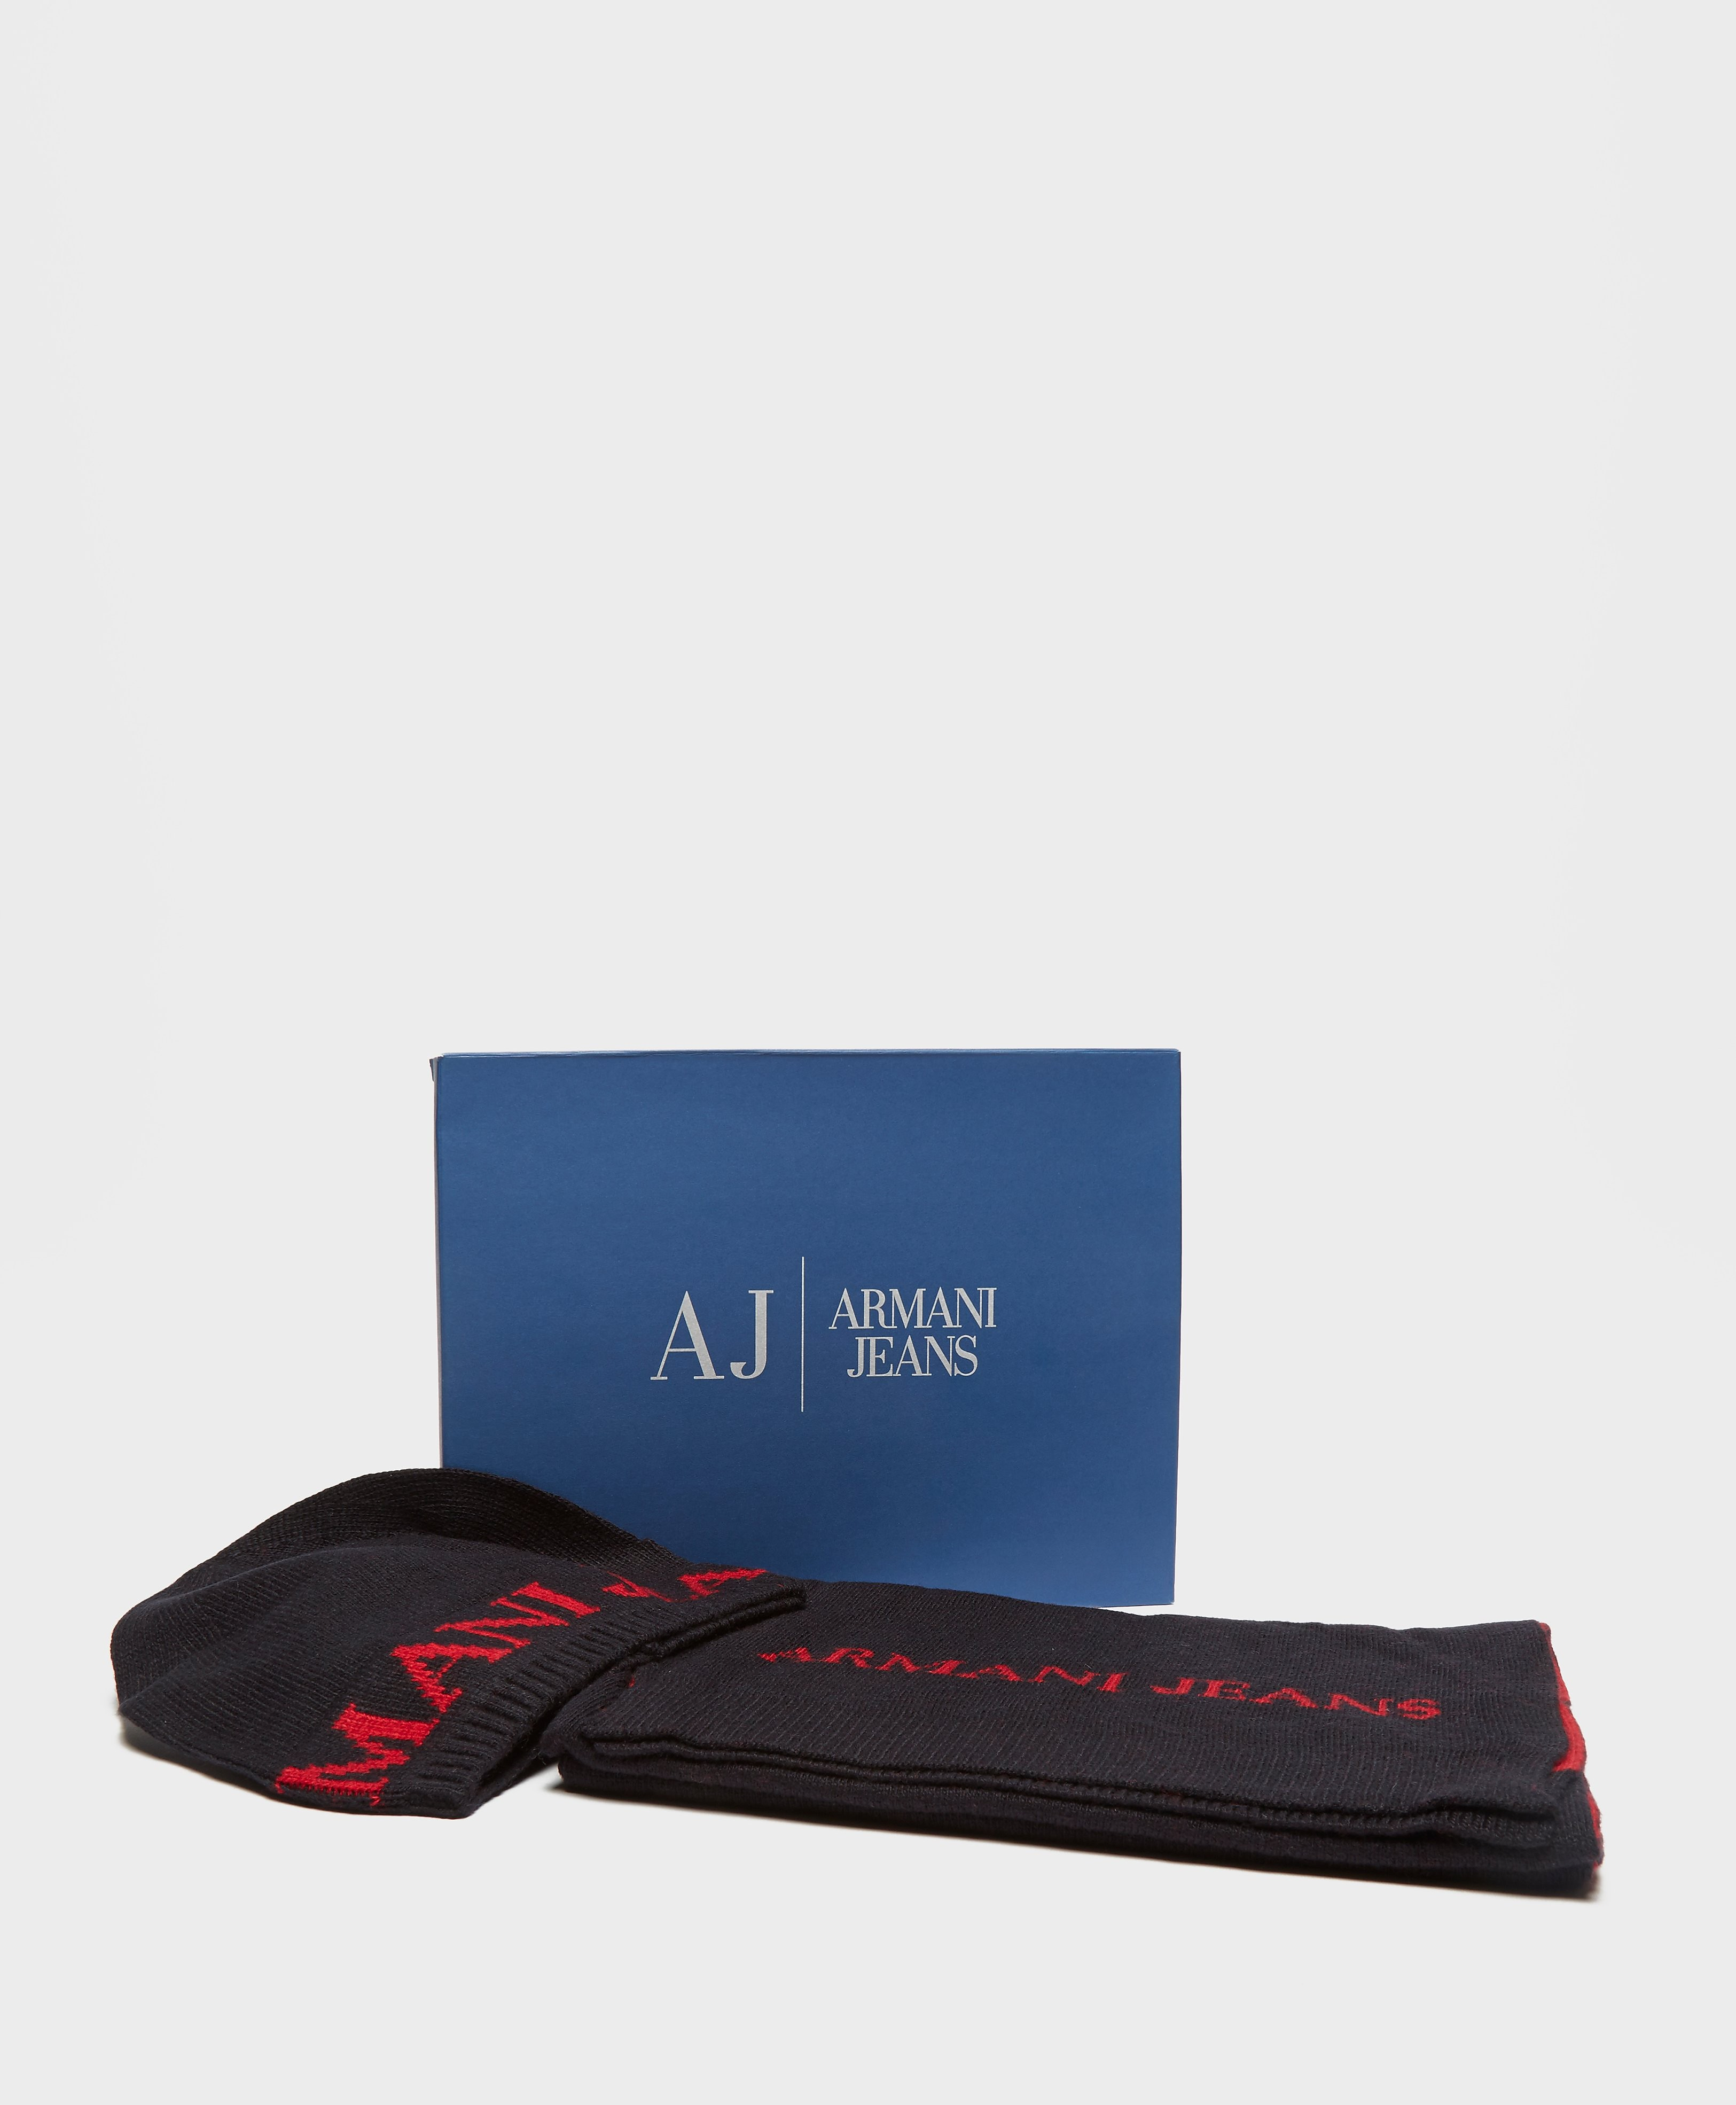 Armani Jeans Hat and Scarf Set